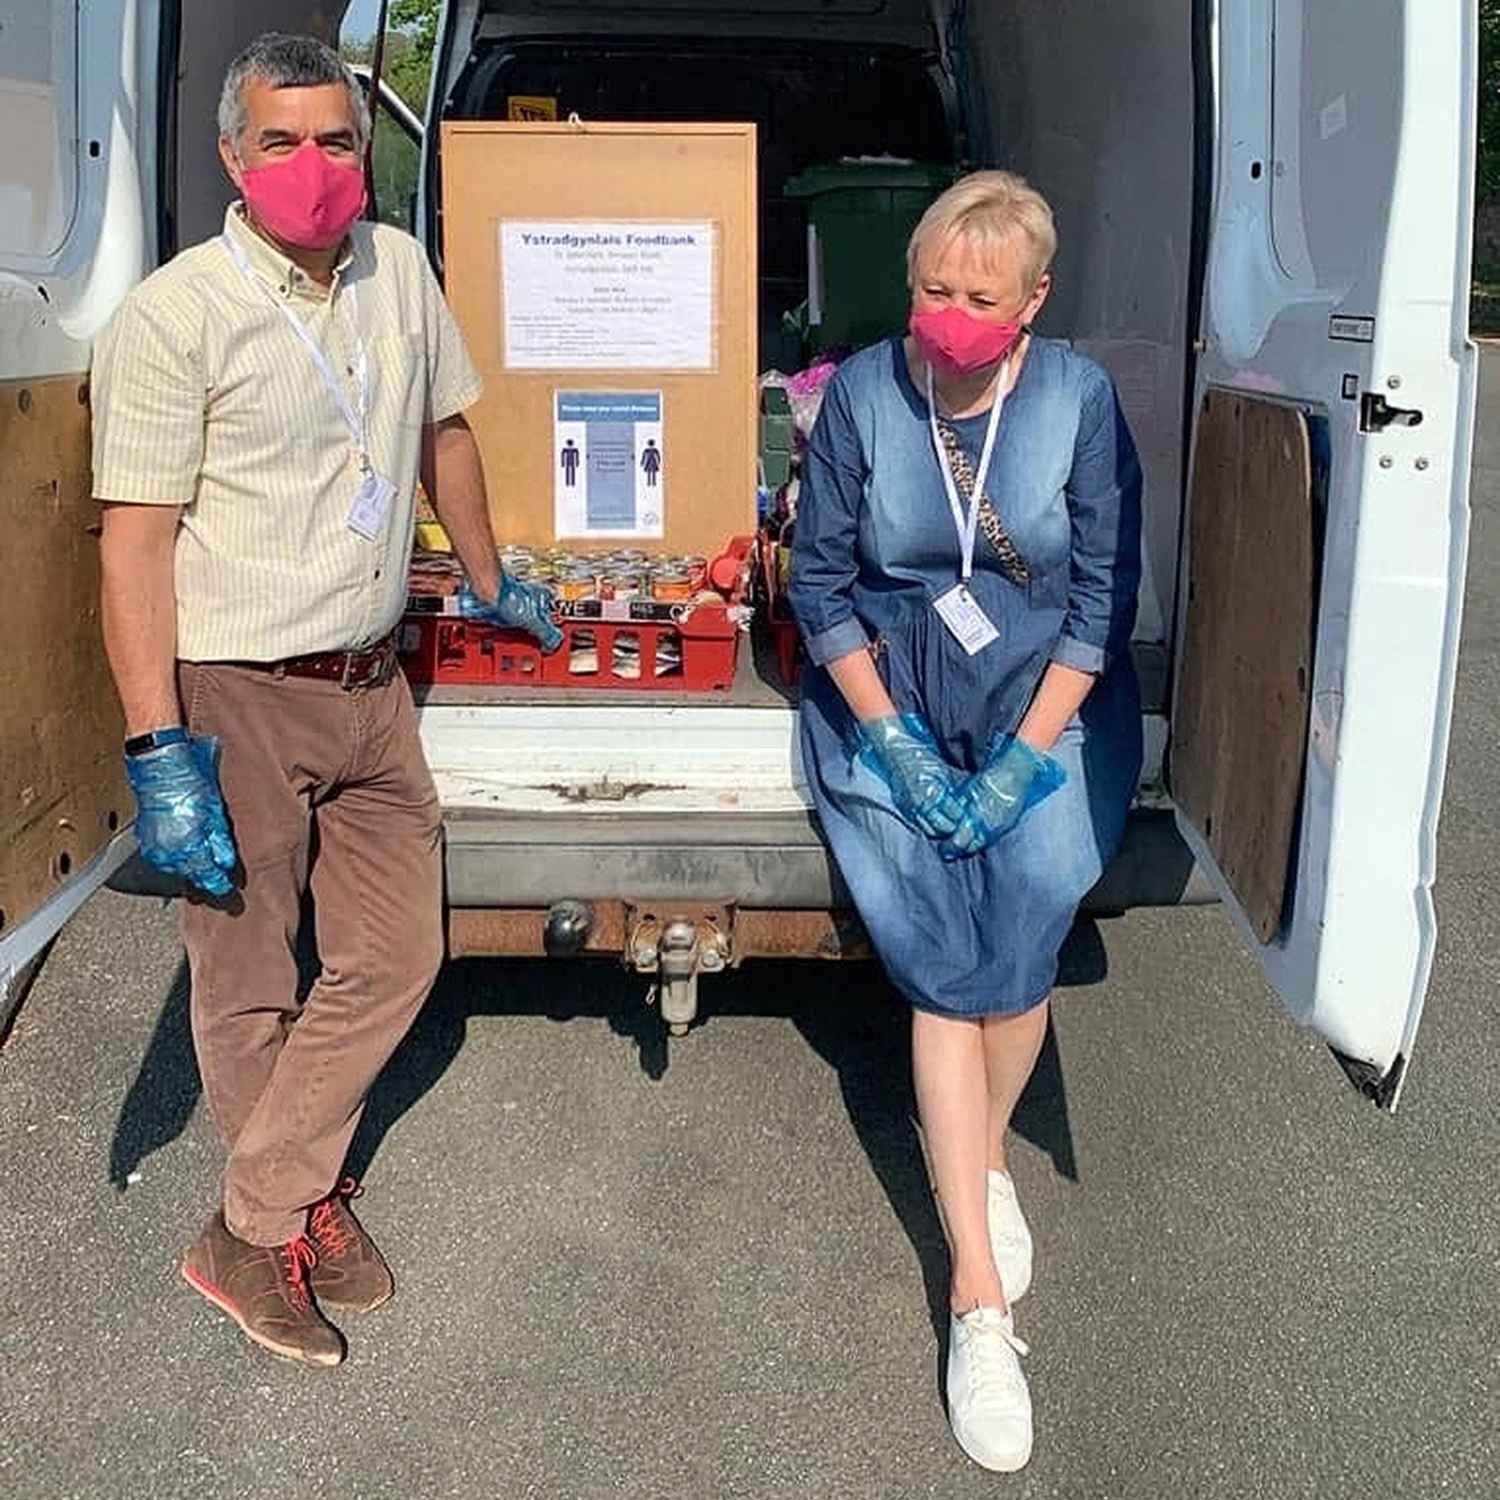 Image of two people standing at the rear of a van serving foodbank food